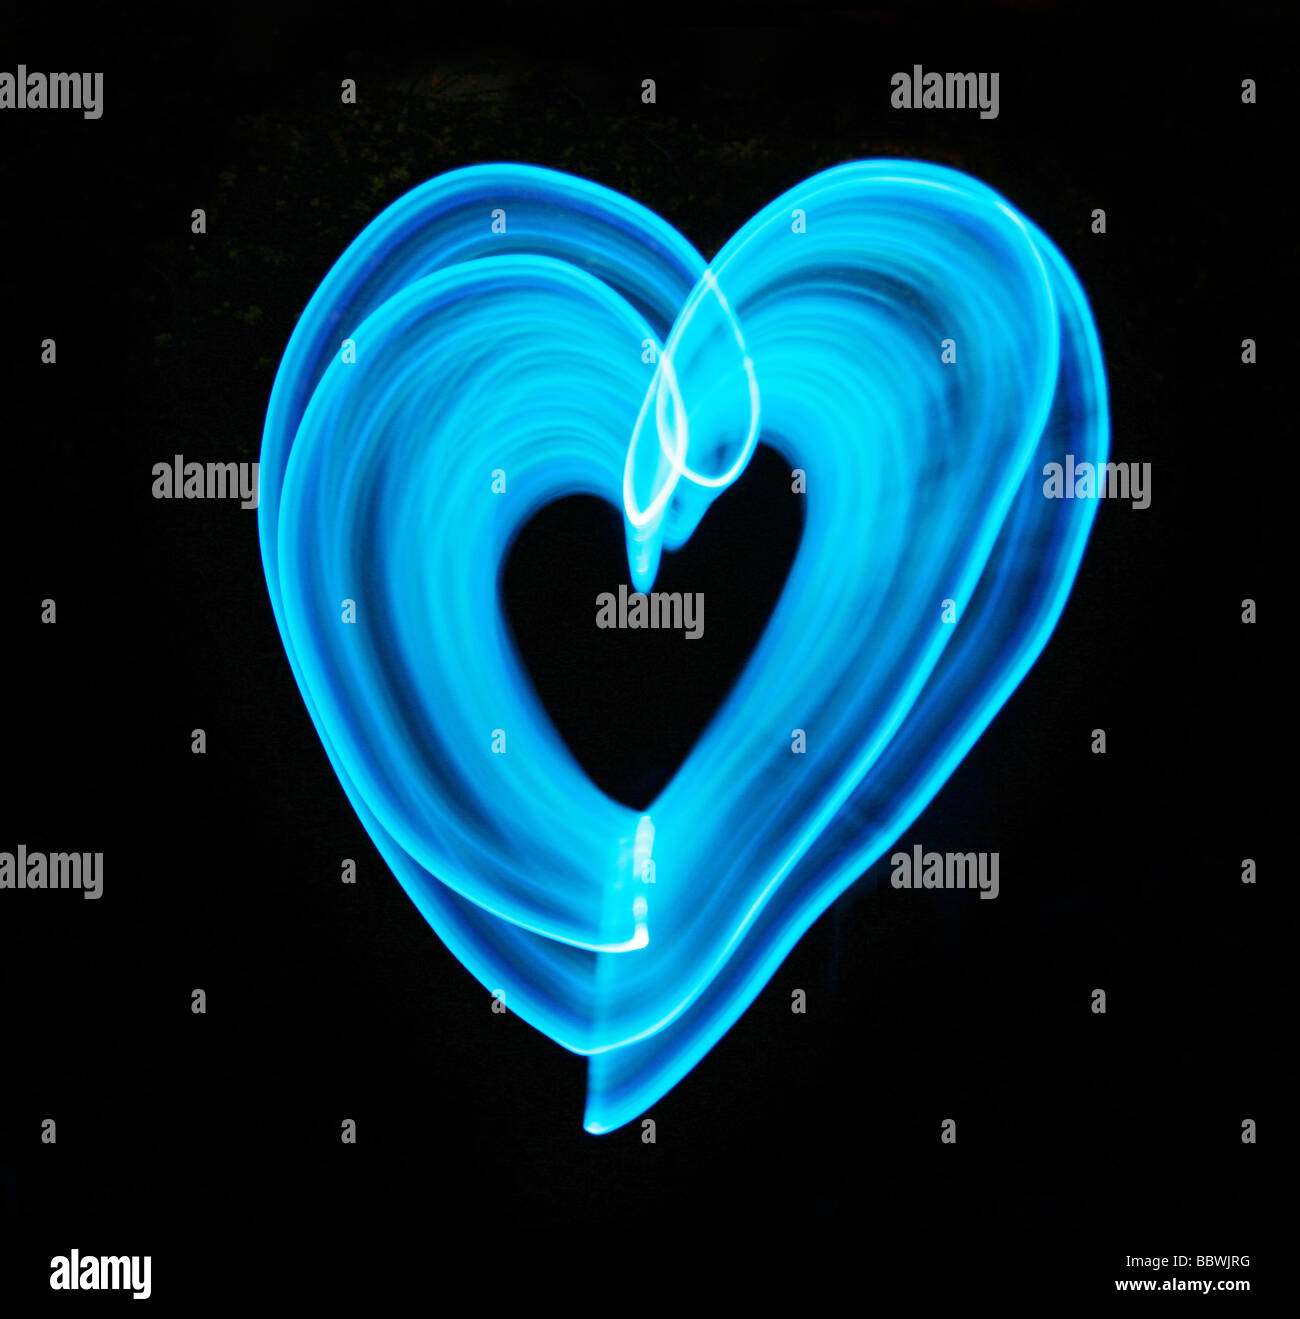 blue light heart - Stock Image